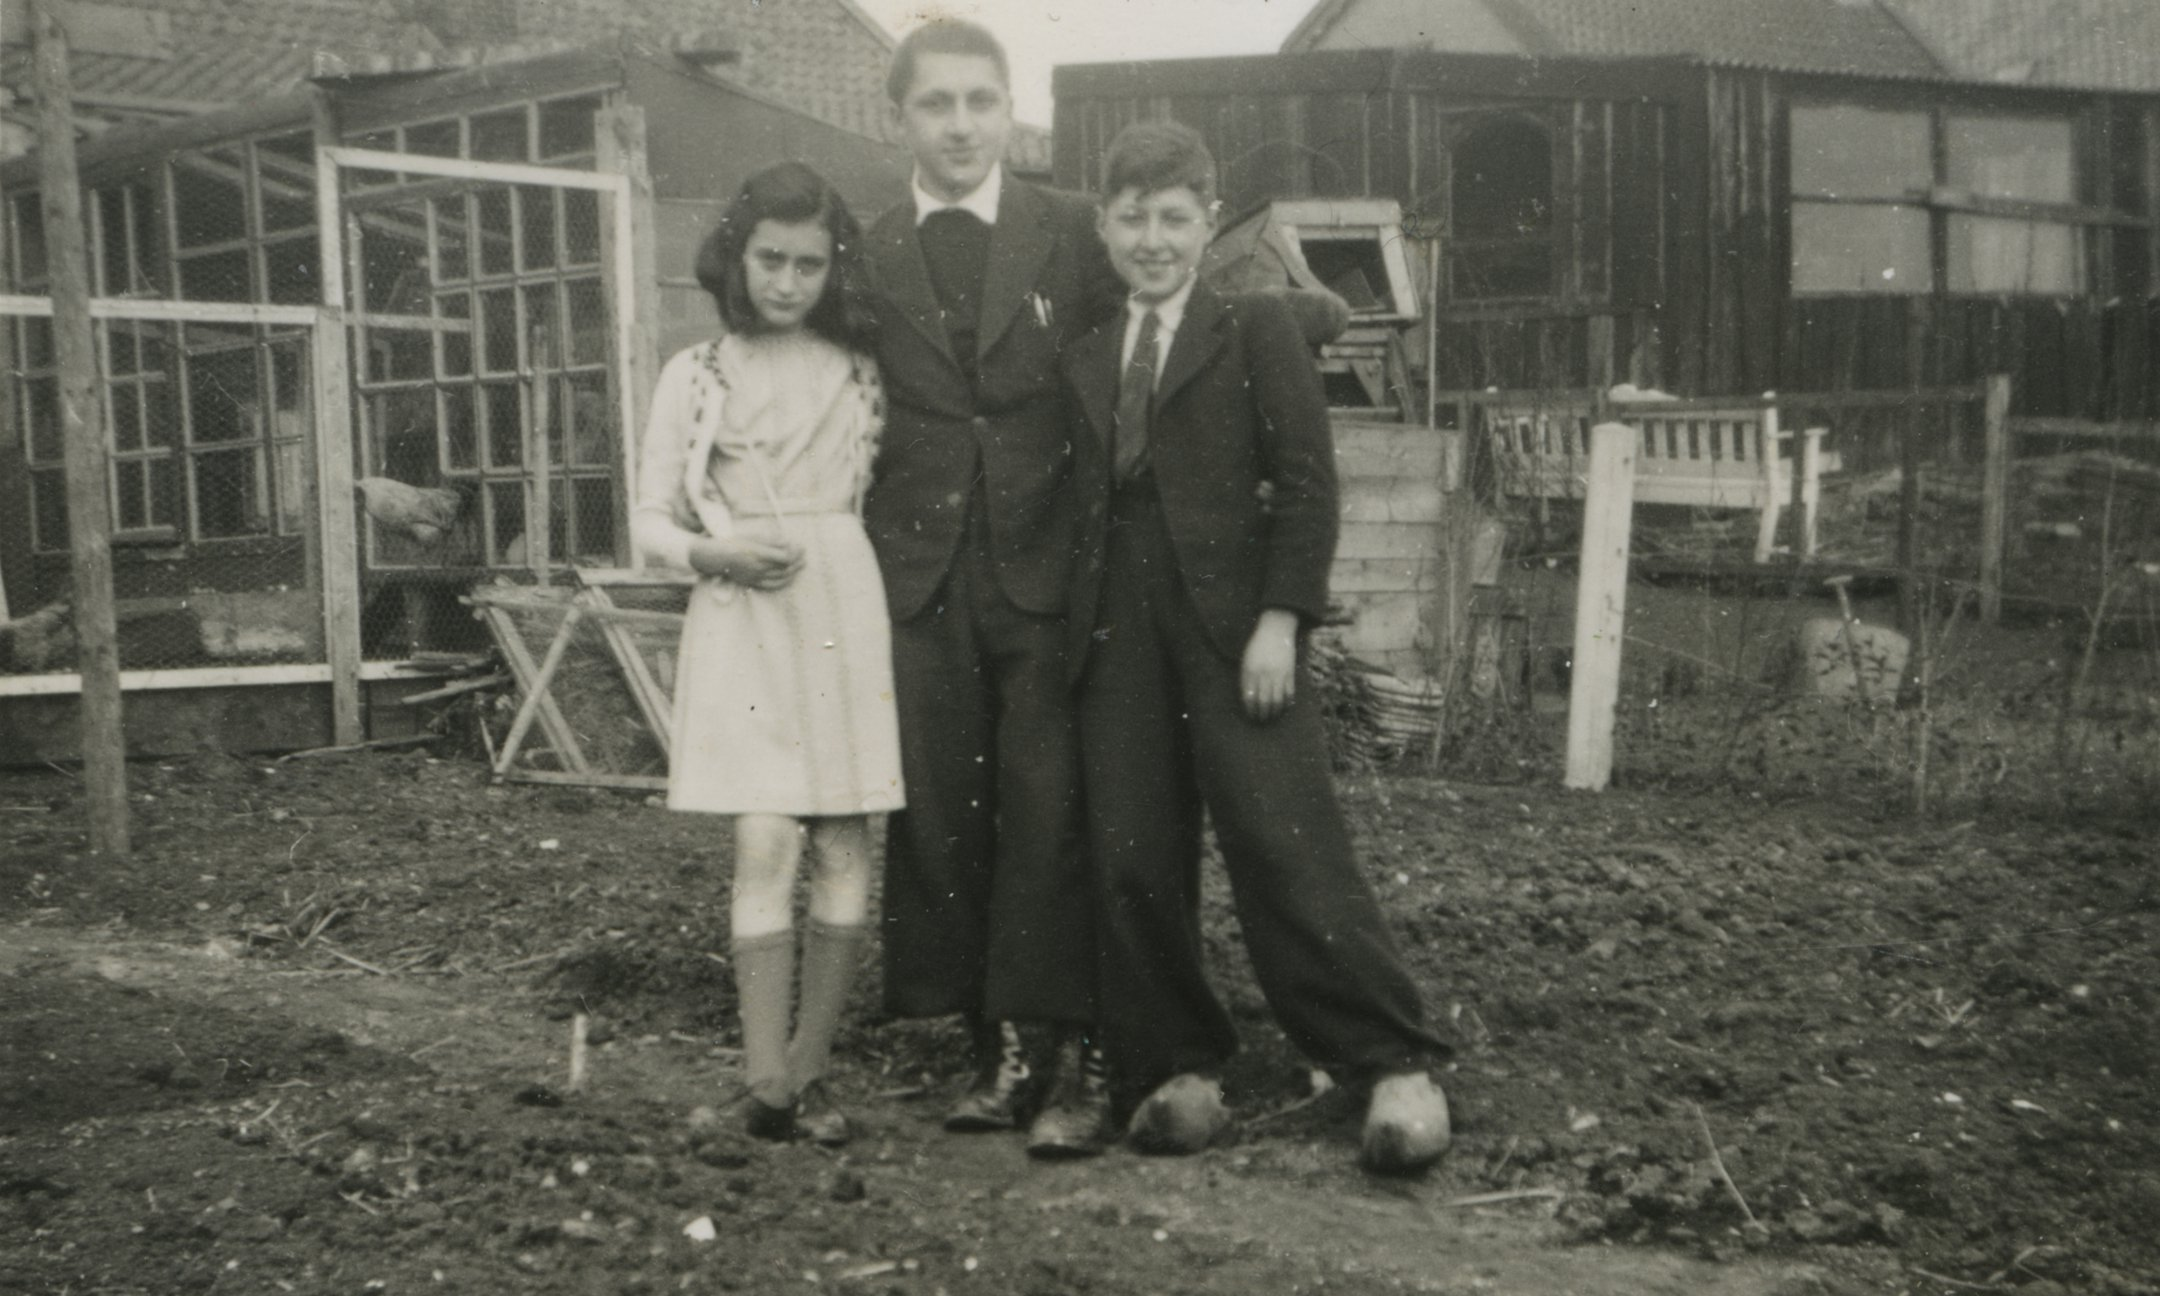 Anne with Hermann and Herbert Wilp in the vicinity of Amsterdam (around 1941)